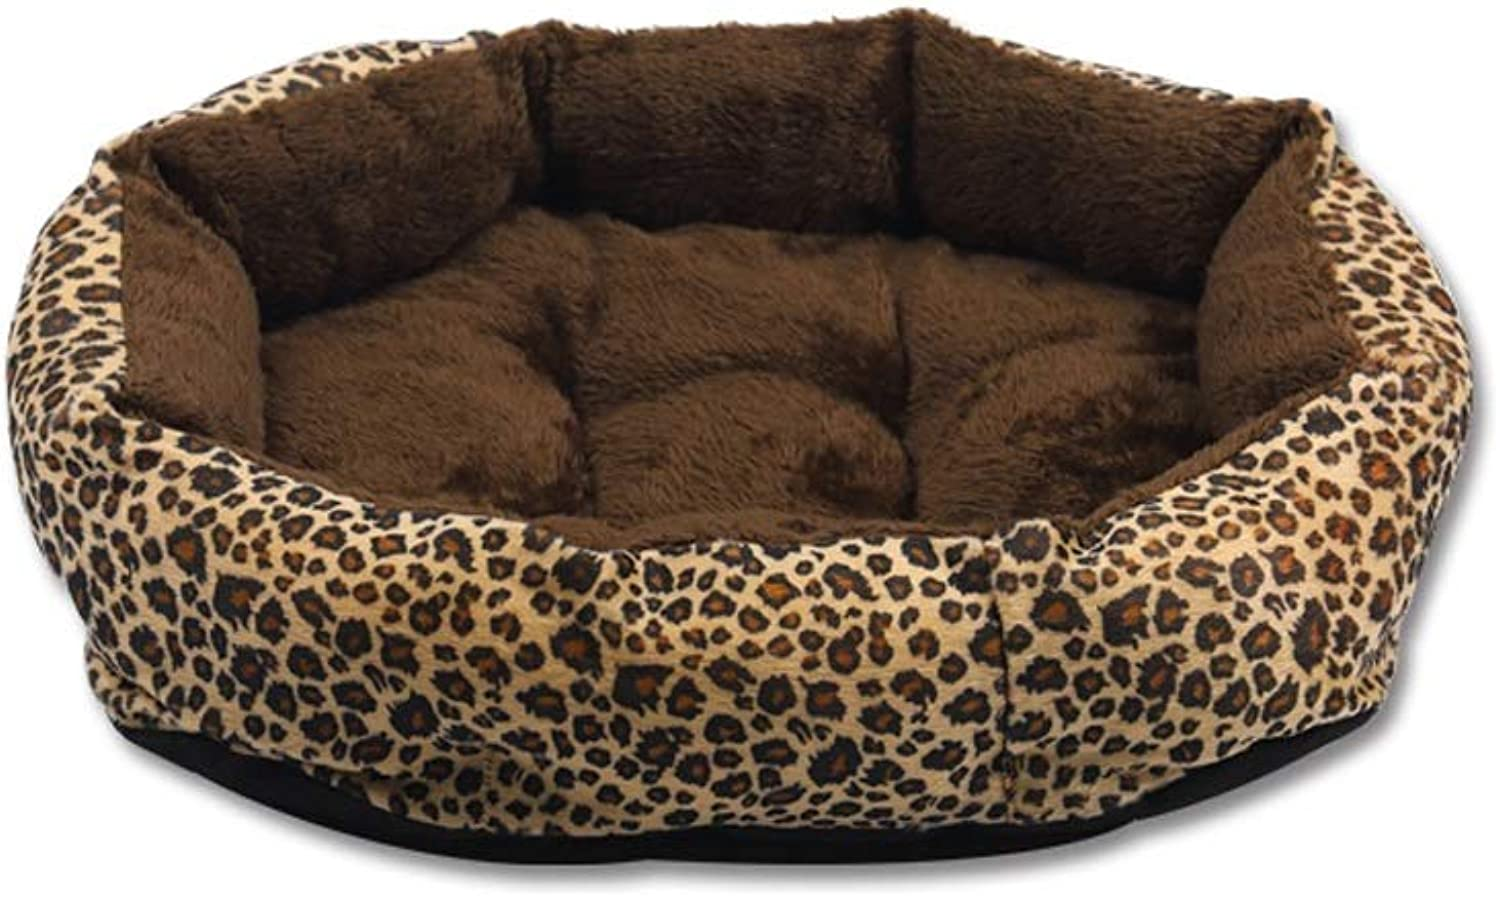 HQSB Pet Bed Soft Washable Basket Dog Bed Cushion with PP Cotton Lining for Dogs Cats (color   Coffee, Size   L)